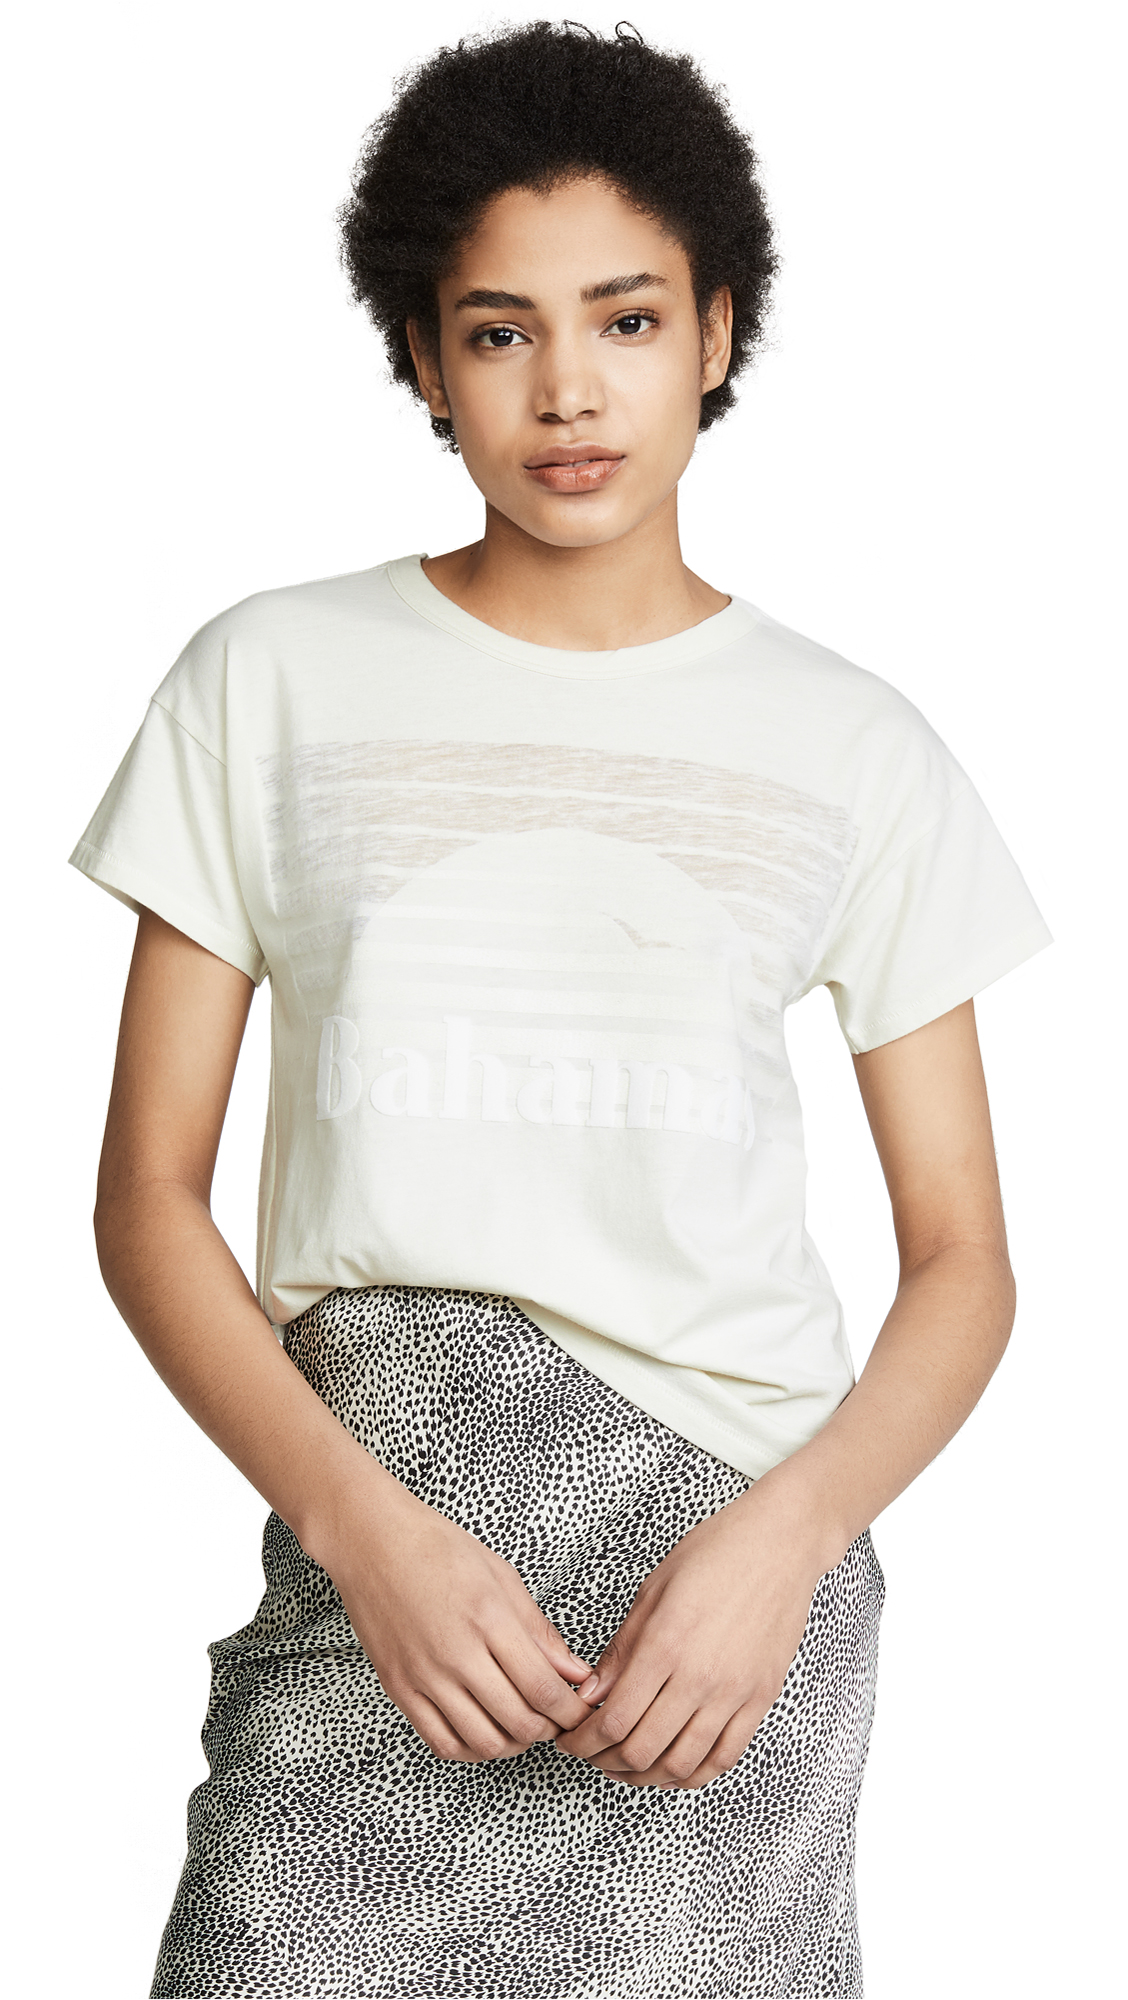 Bahamas Cotton-Blend T-Shirt - White Size L in Ivory